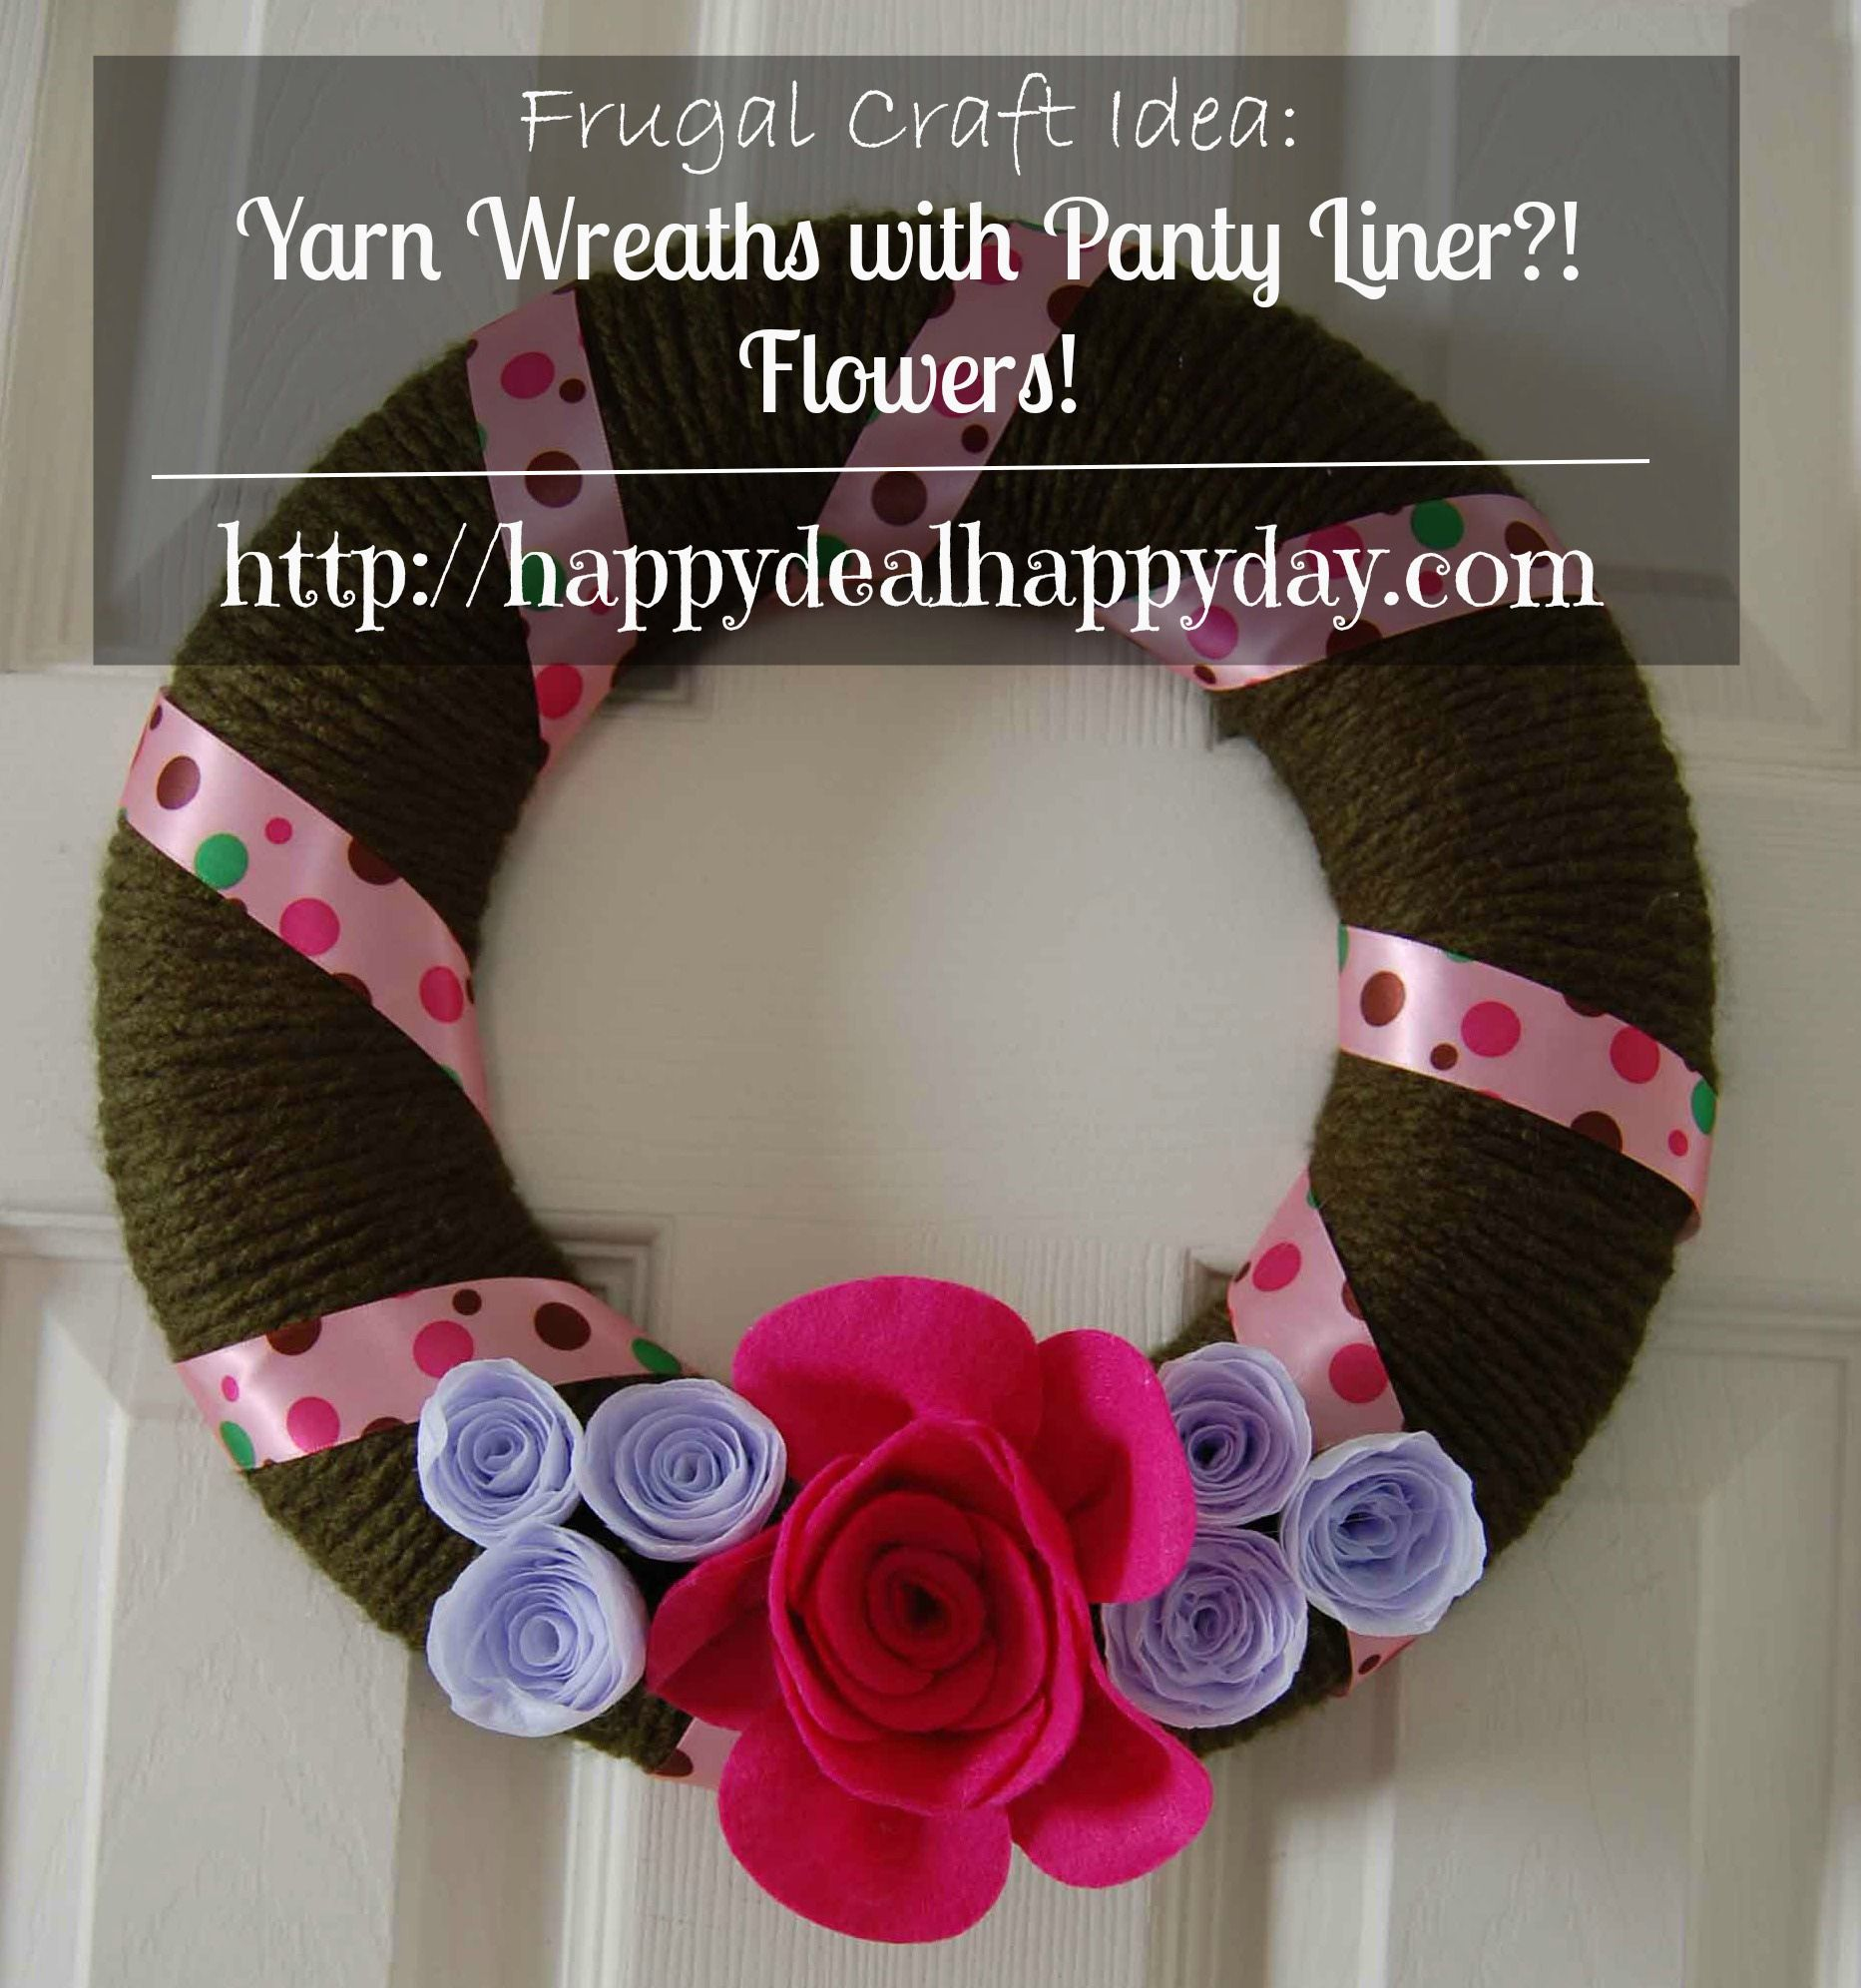 8 Ways to Decorate Your Home Using Items From The Grocery Store - Yarn Wreath  happydealhappyday.com